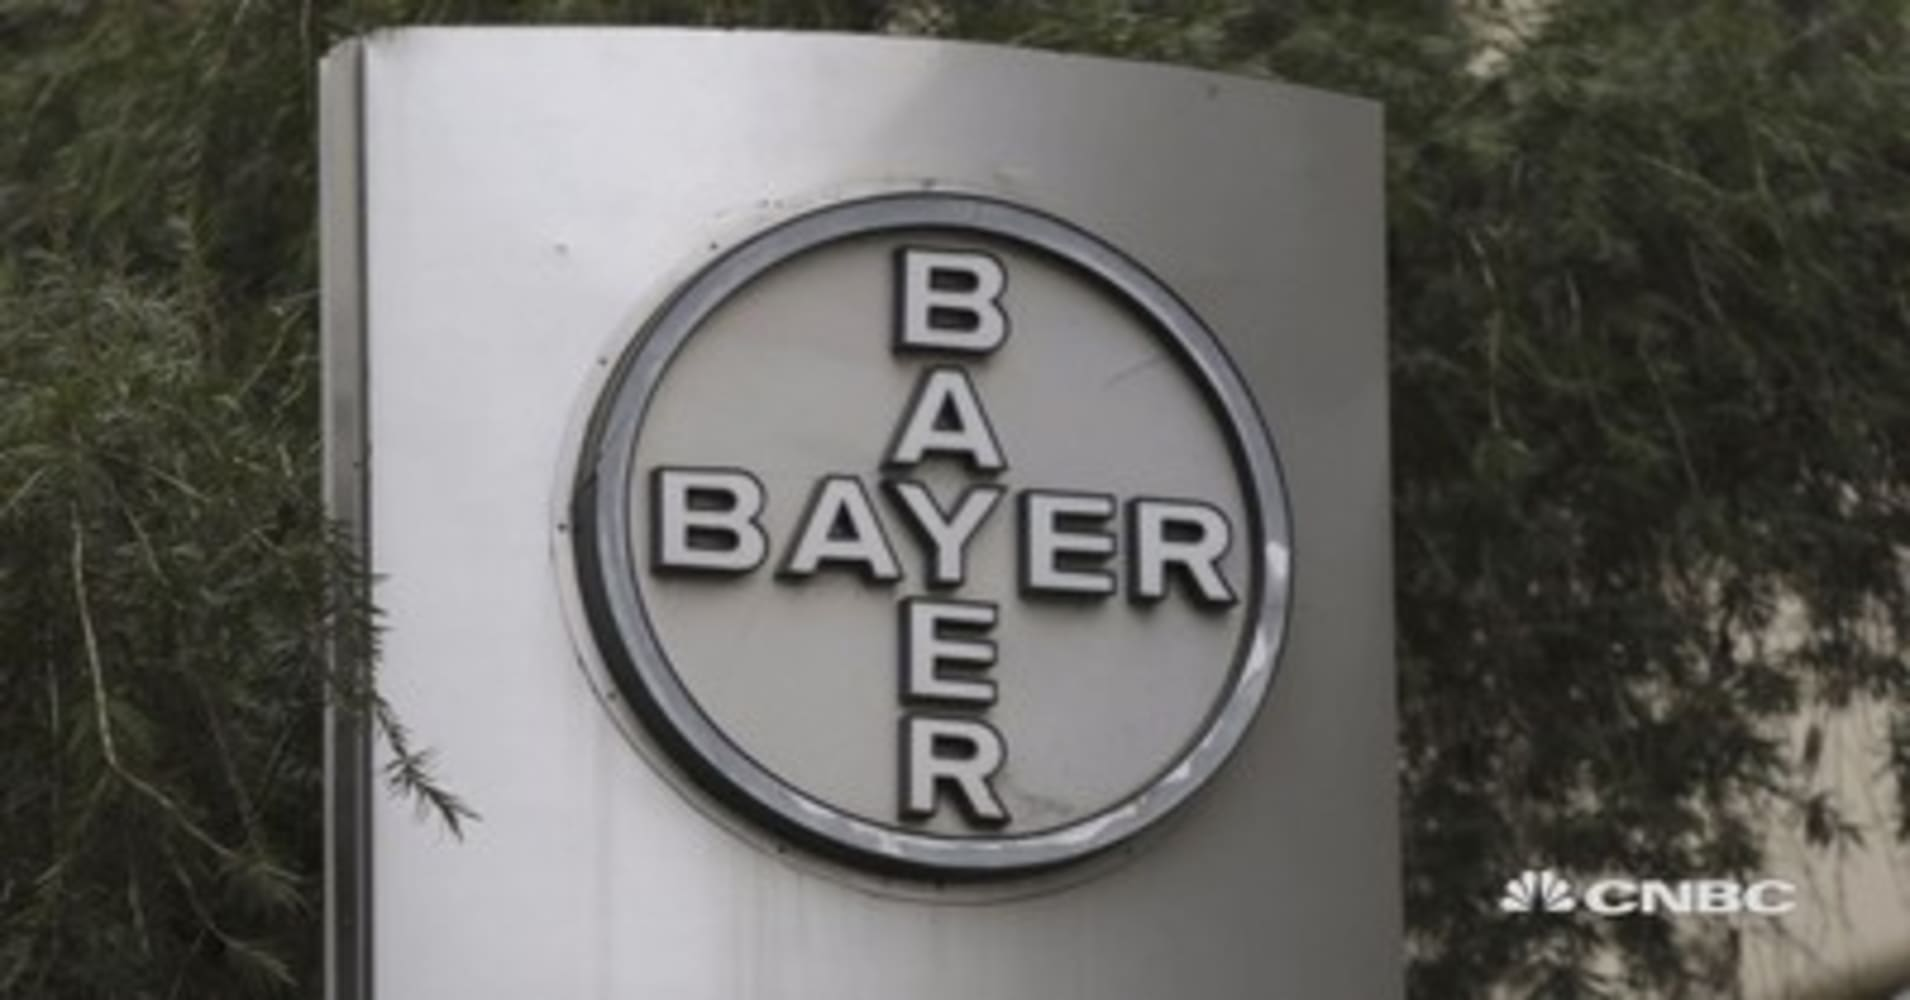 Bayer shares slide after Monsanto's Roundup cancer trial